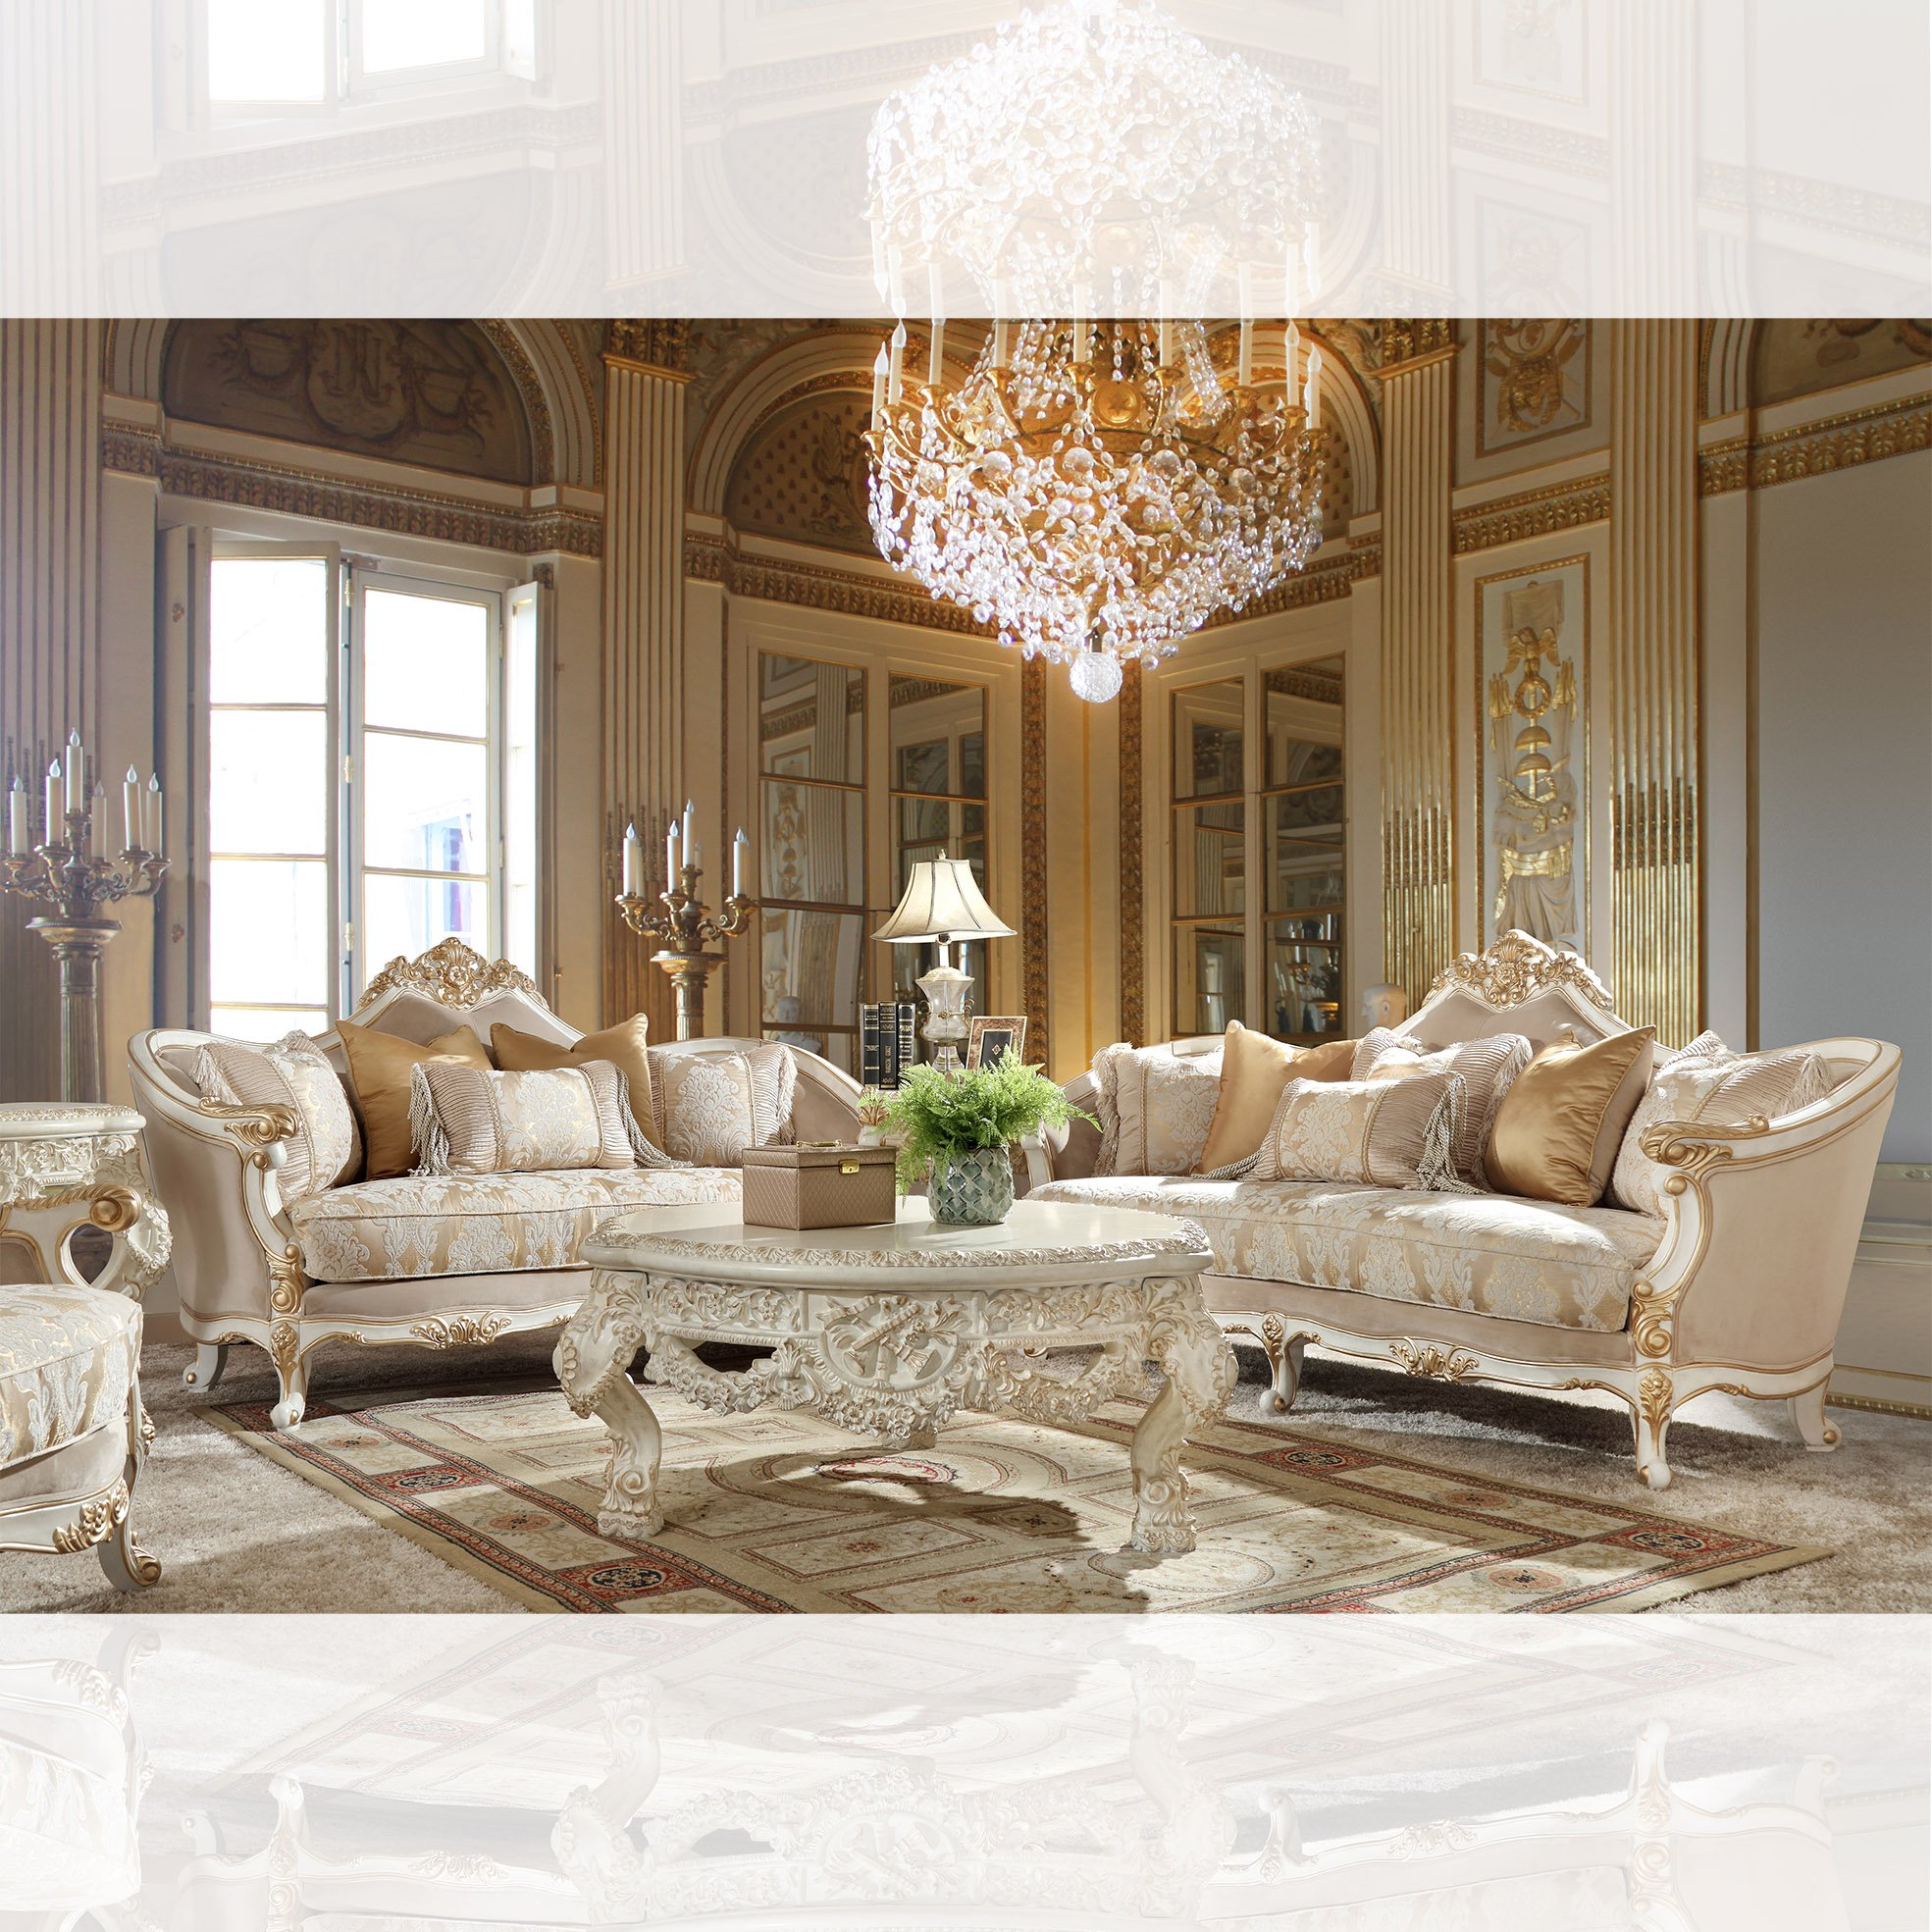 Traditional Living Room Set 3 PCS in White Fabric Traditional Style Homey Design HD-2669